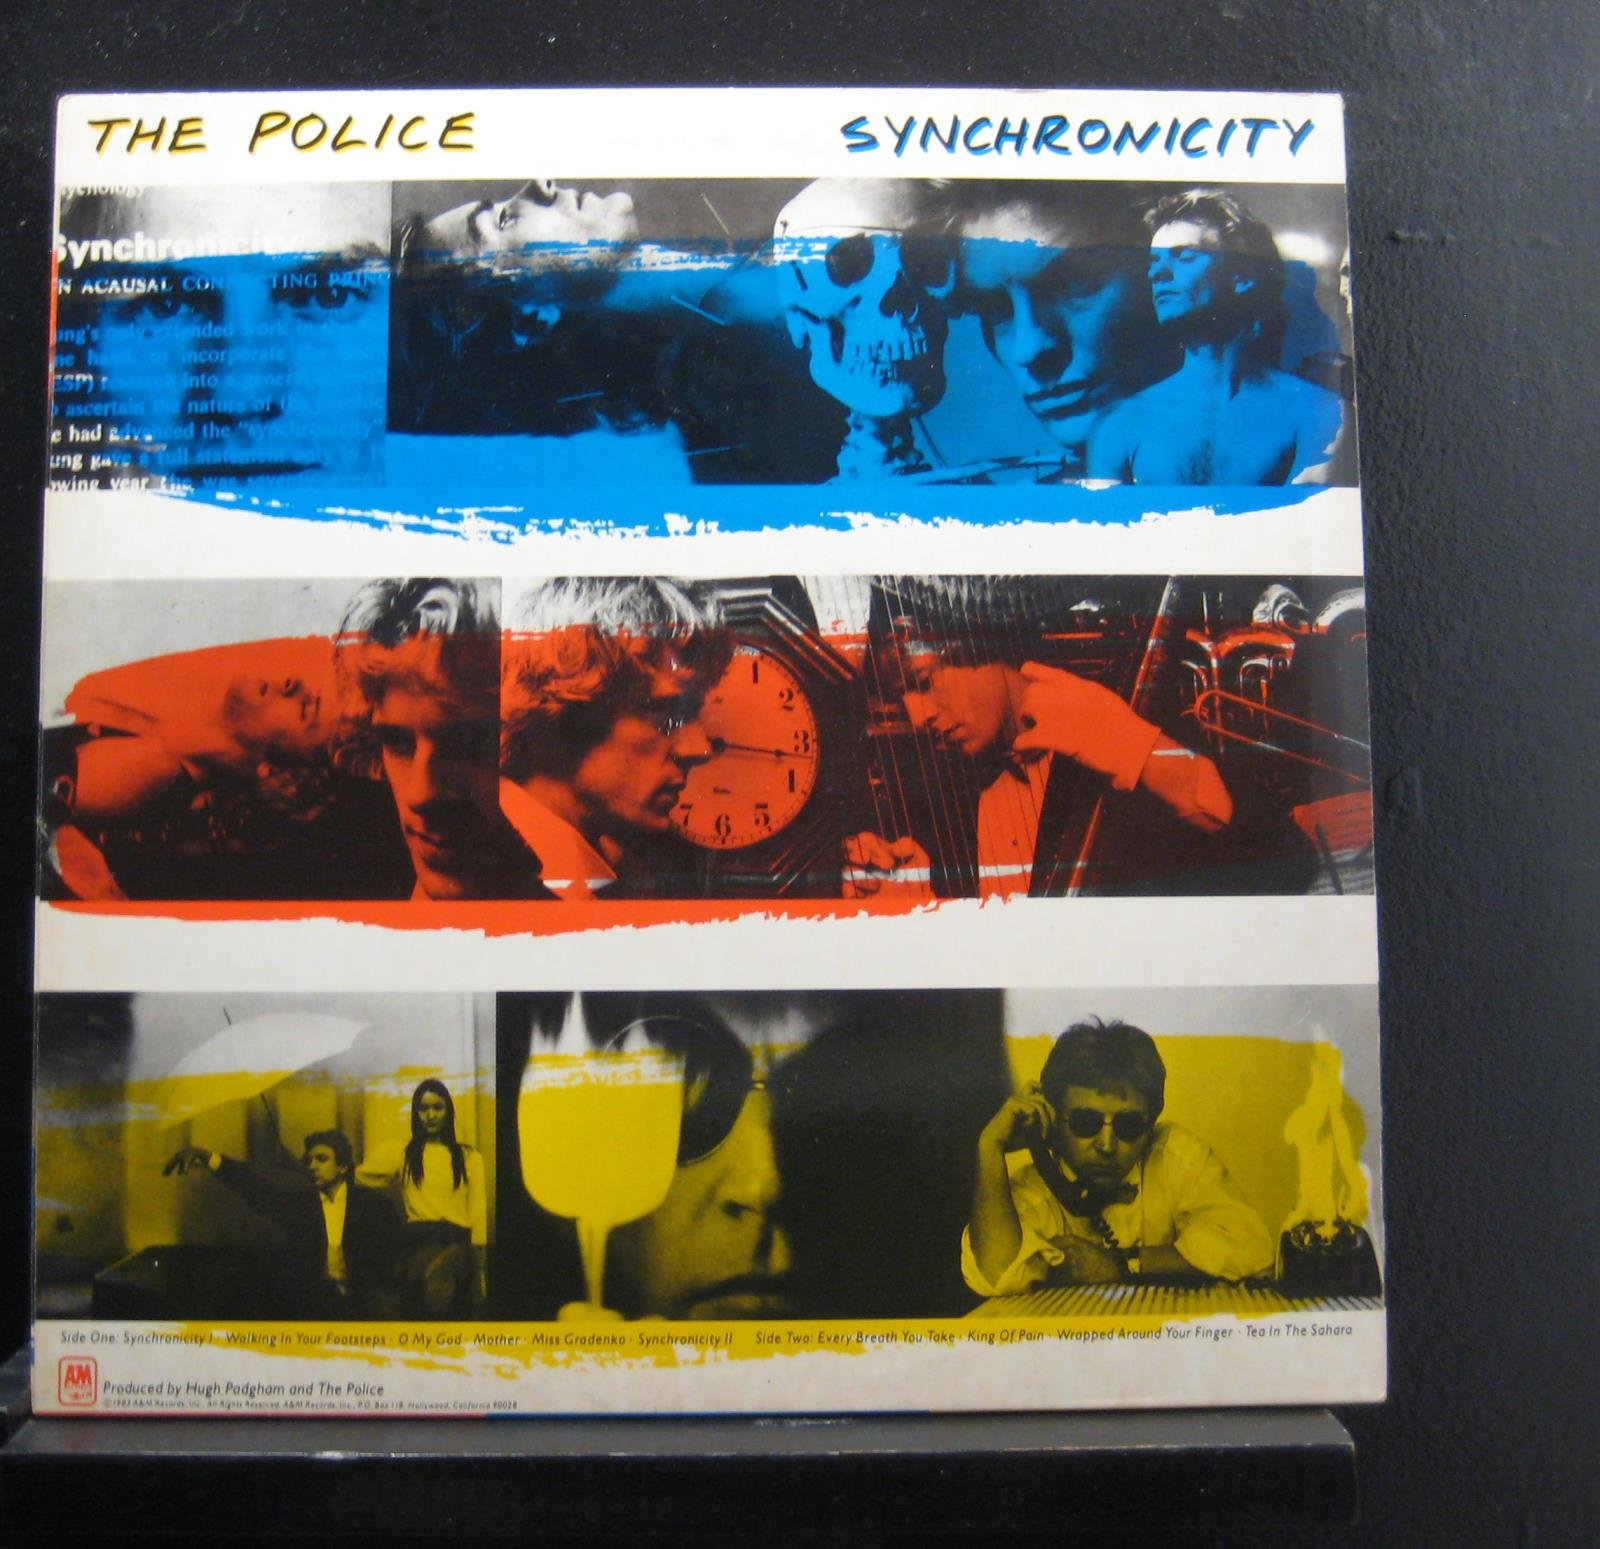 Police, The - Synchronicity - A&M Records - SP-3735 by A&M Records